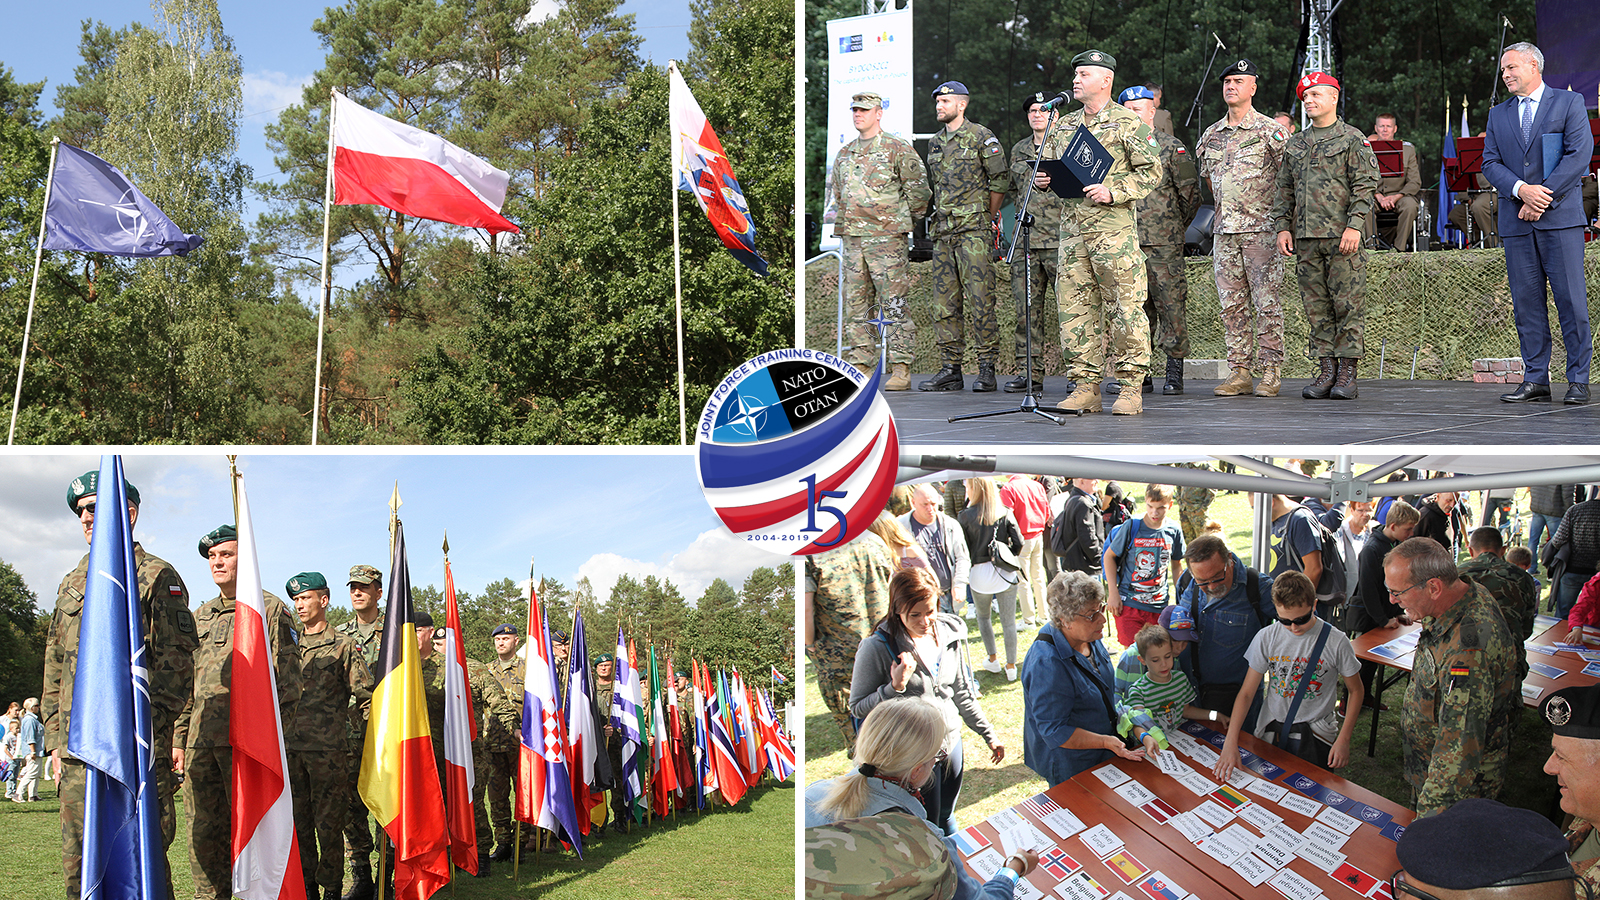 A day to remember: 3rd NATO Day in Bydgoszcz